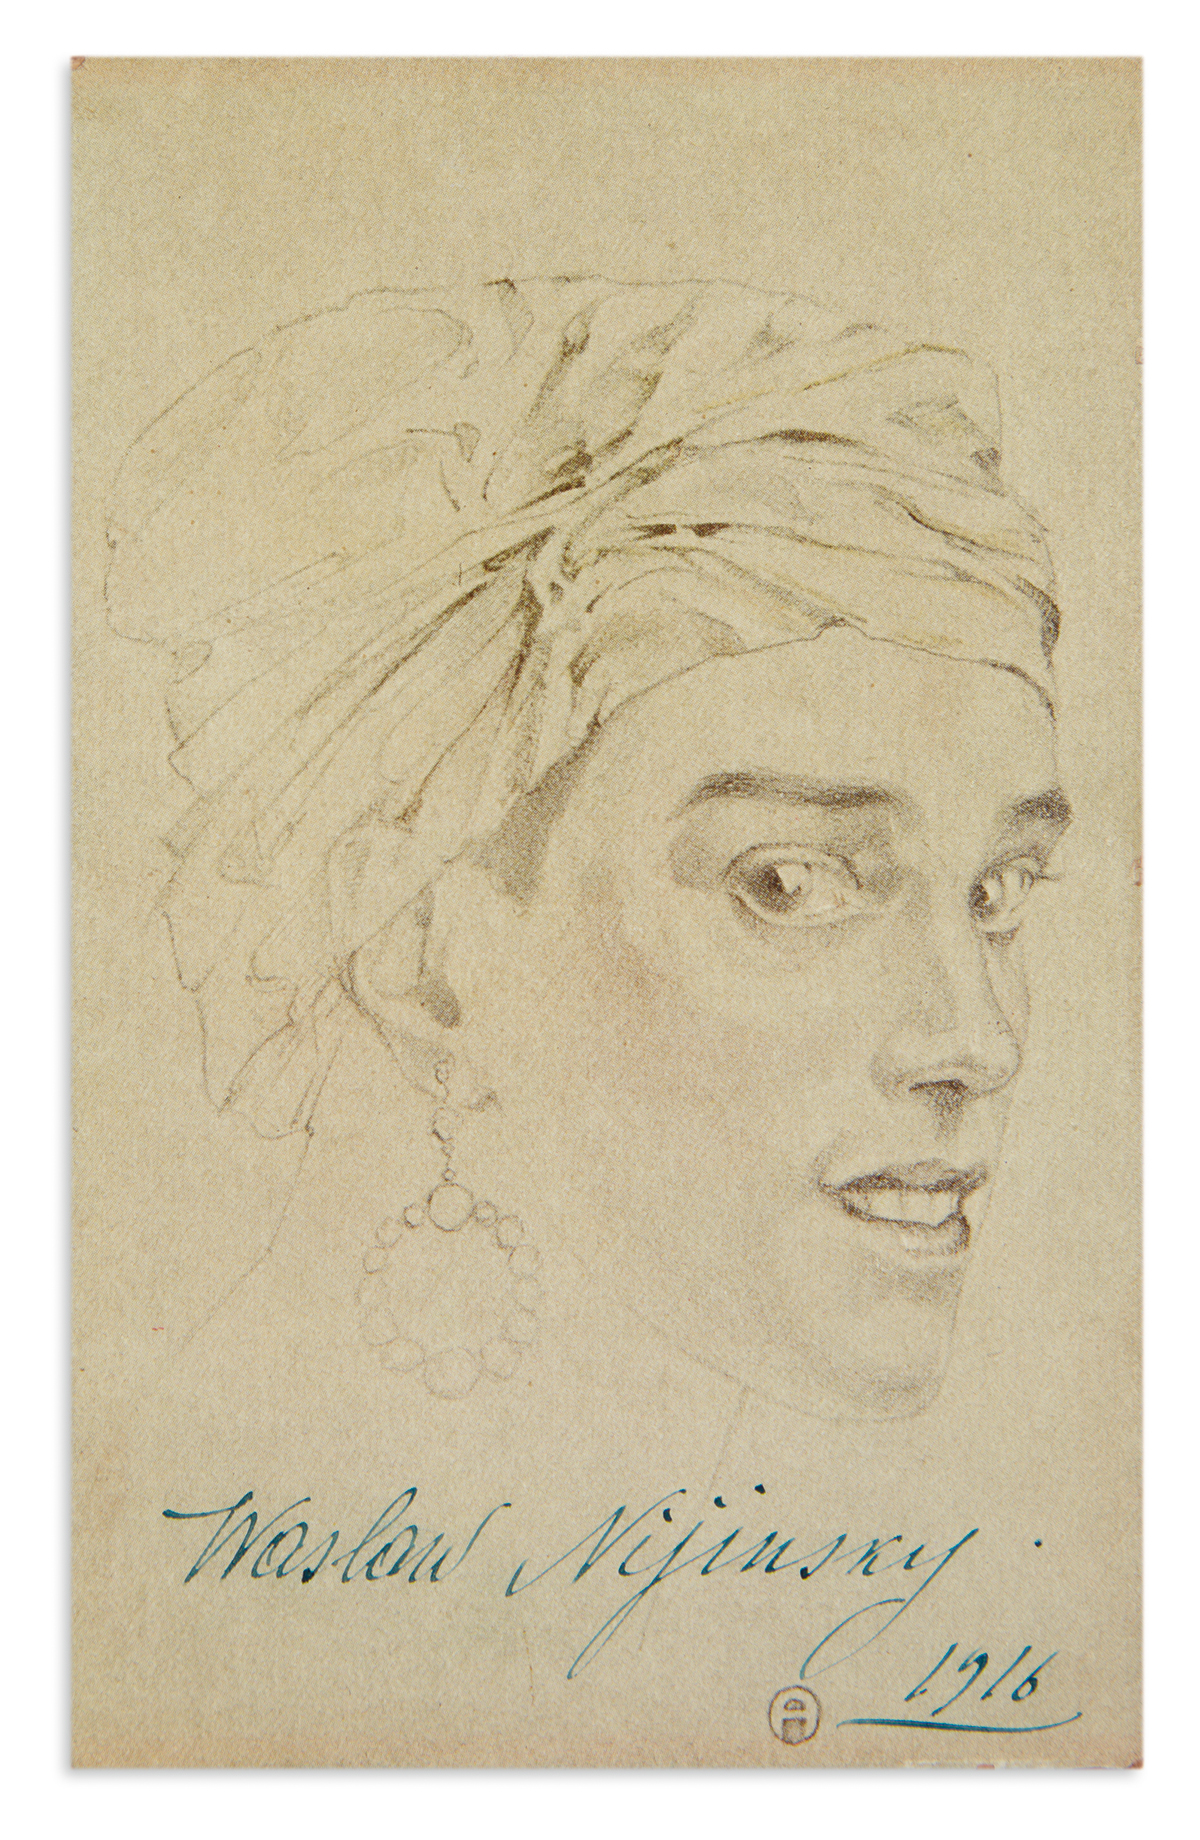 NIJINSKY-VASLAV-Photograph-Postcard-dated-and-Signed-Waslow-Nijinsky-showing-a-reproduction-of-a-graphite-drawing-of-his-head